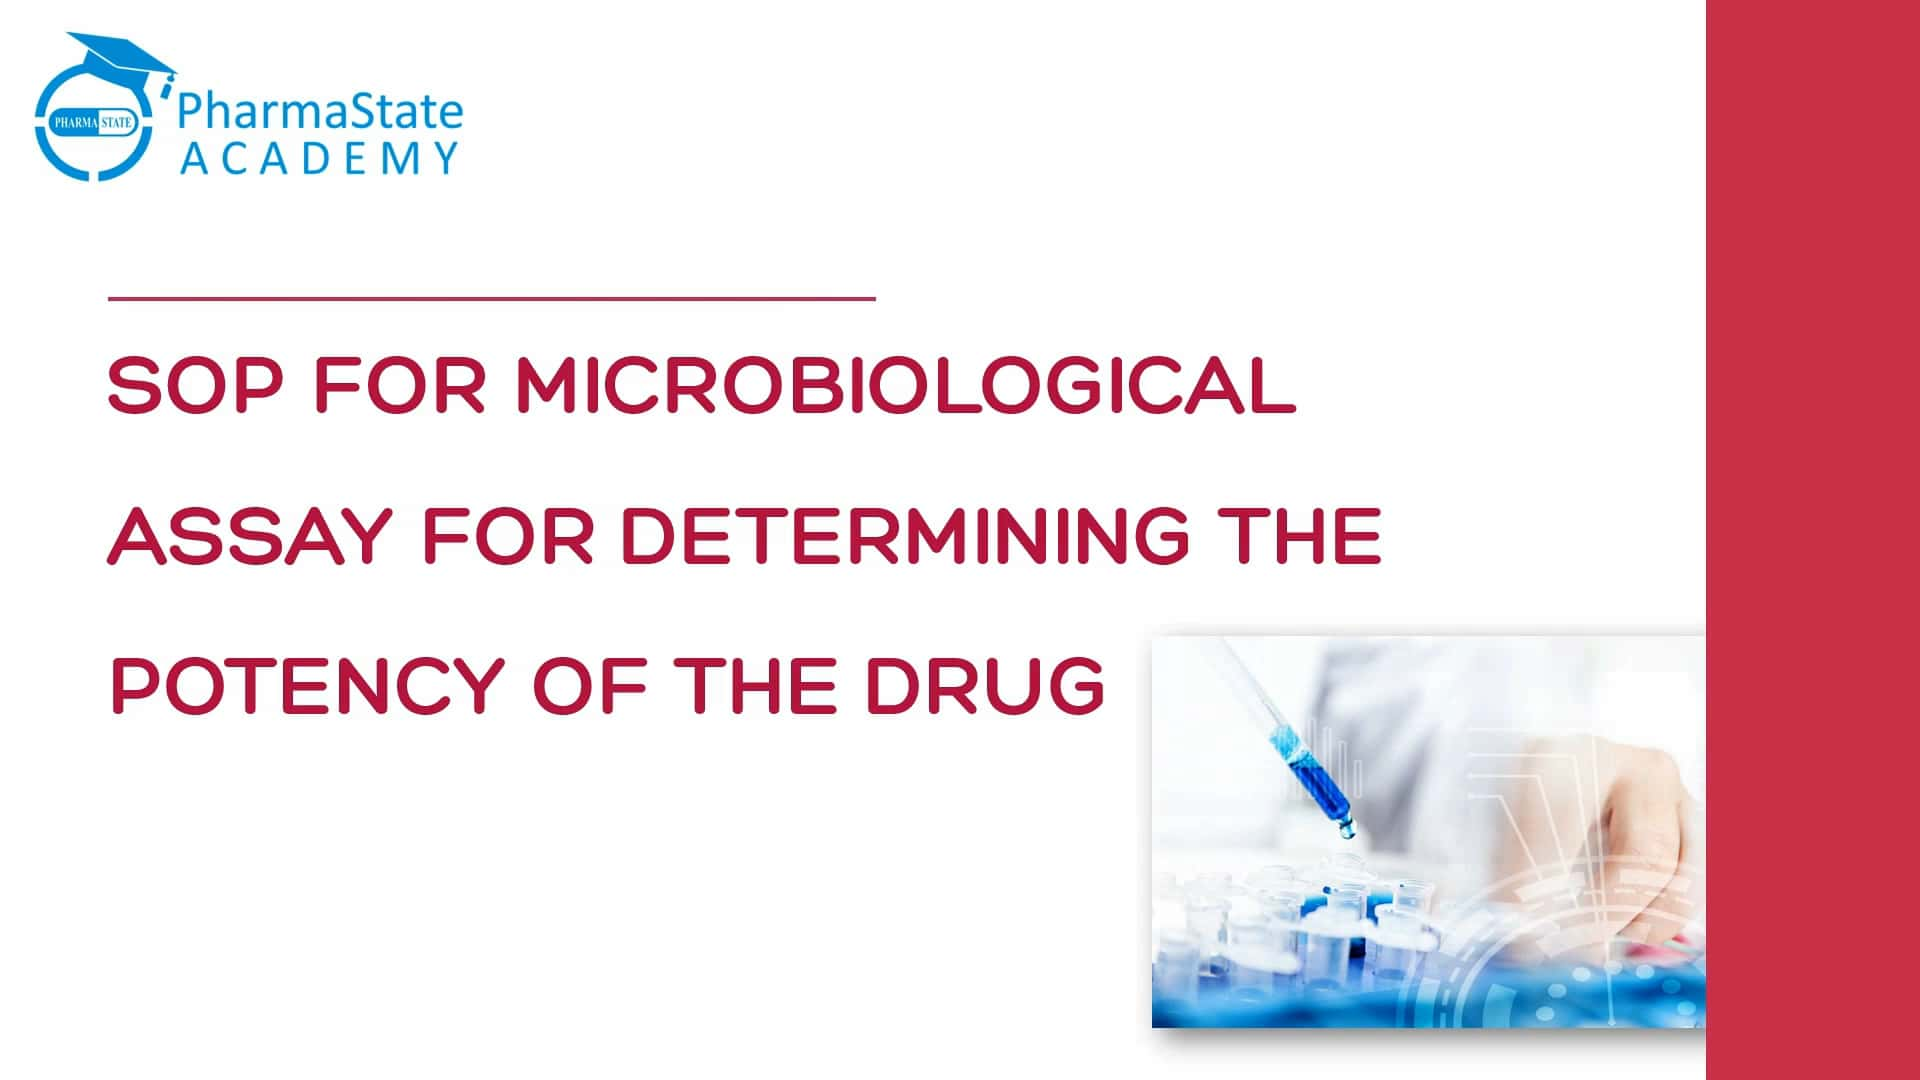 SOP-FOR-MICROBIOLOGICAL-ASSAY-FOR-DETERMINING-THE-POTENCY-OF-THE-DRUG